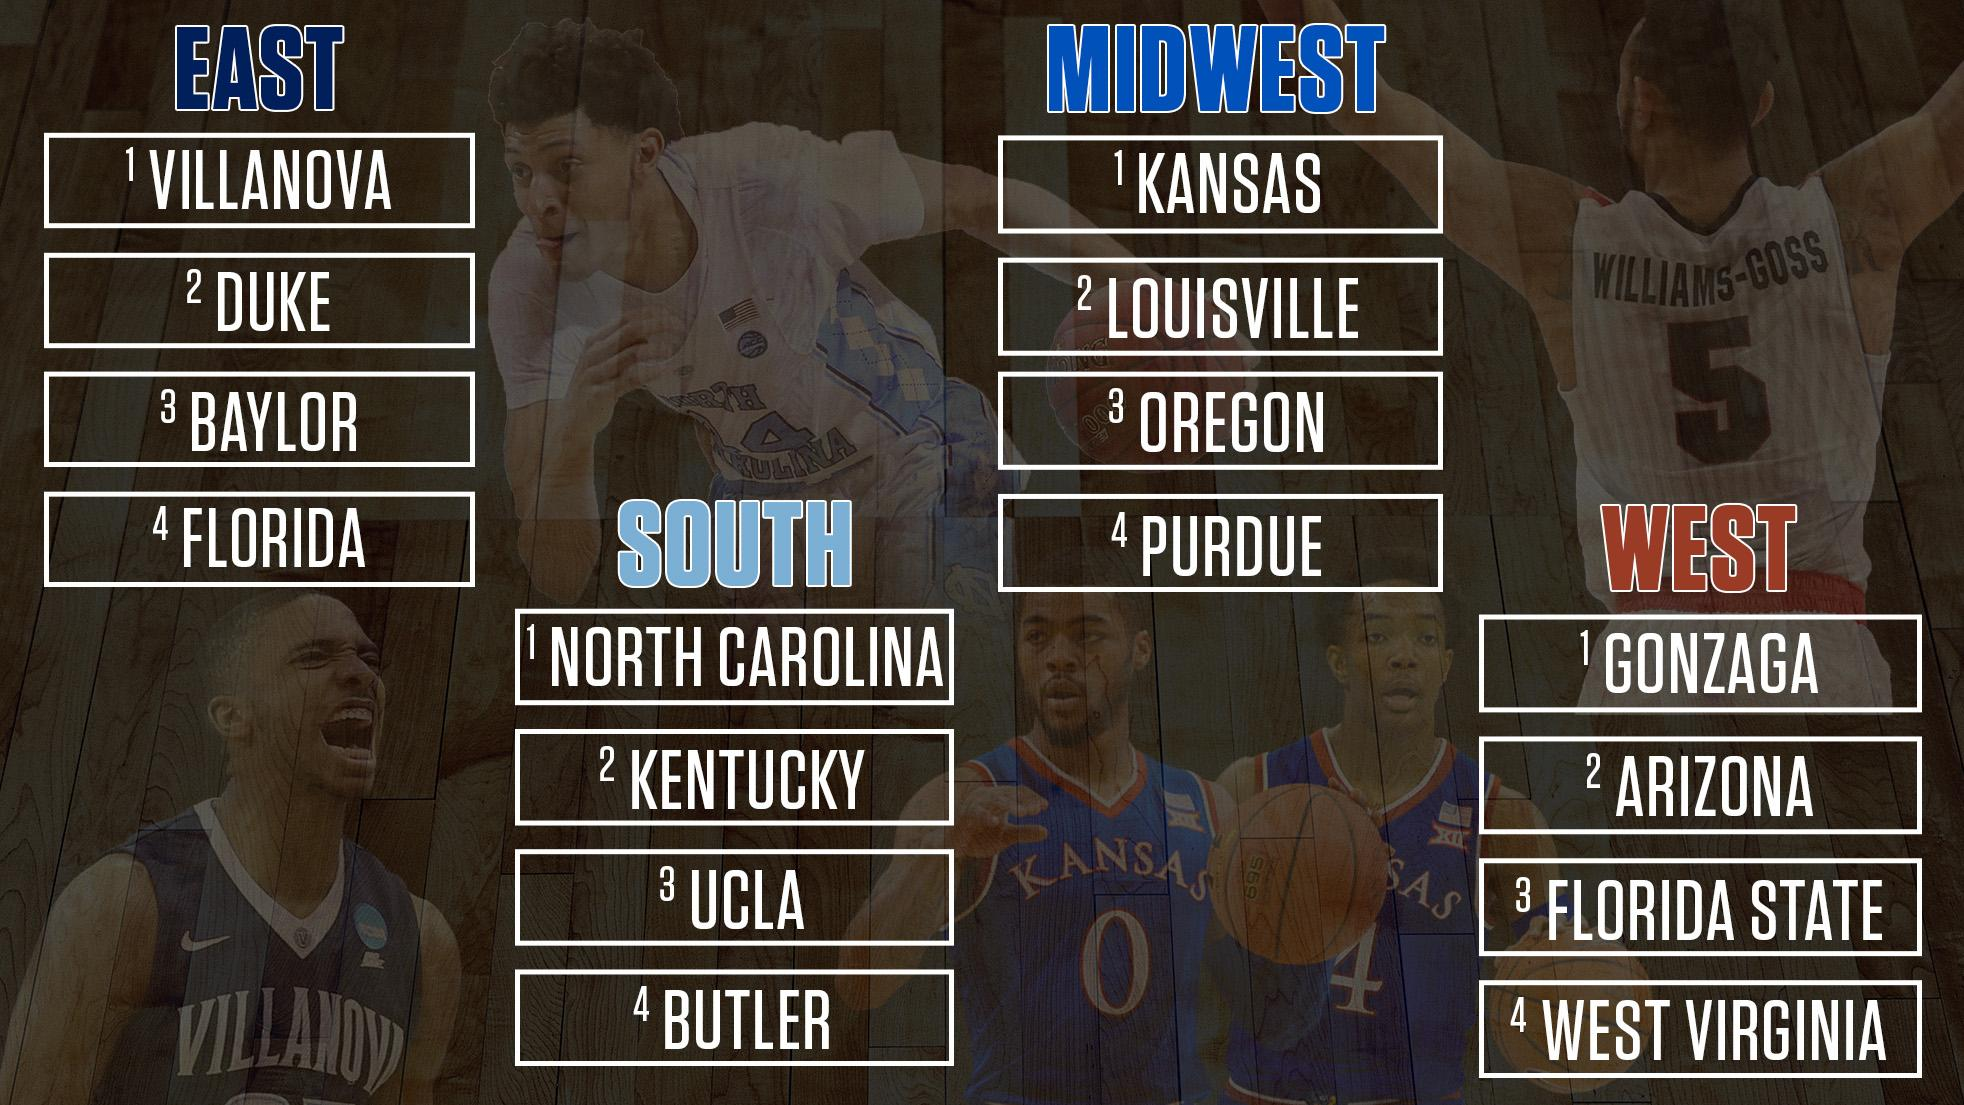 Here's where the best of the best landed.  Who's your pick in each region? https://t.co/NHdJfEcJb9